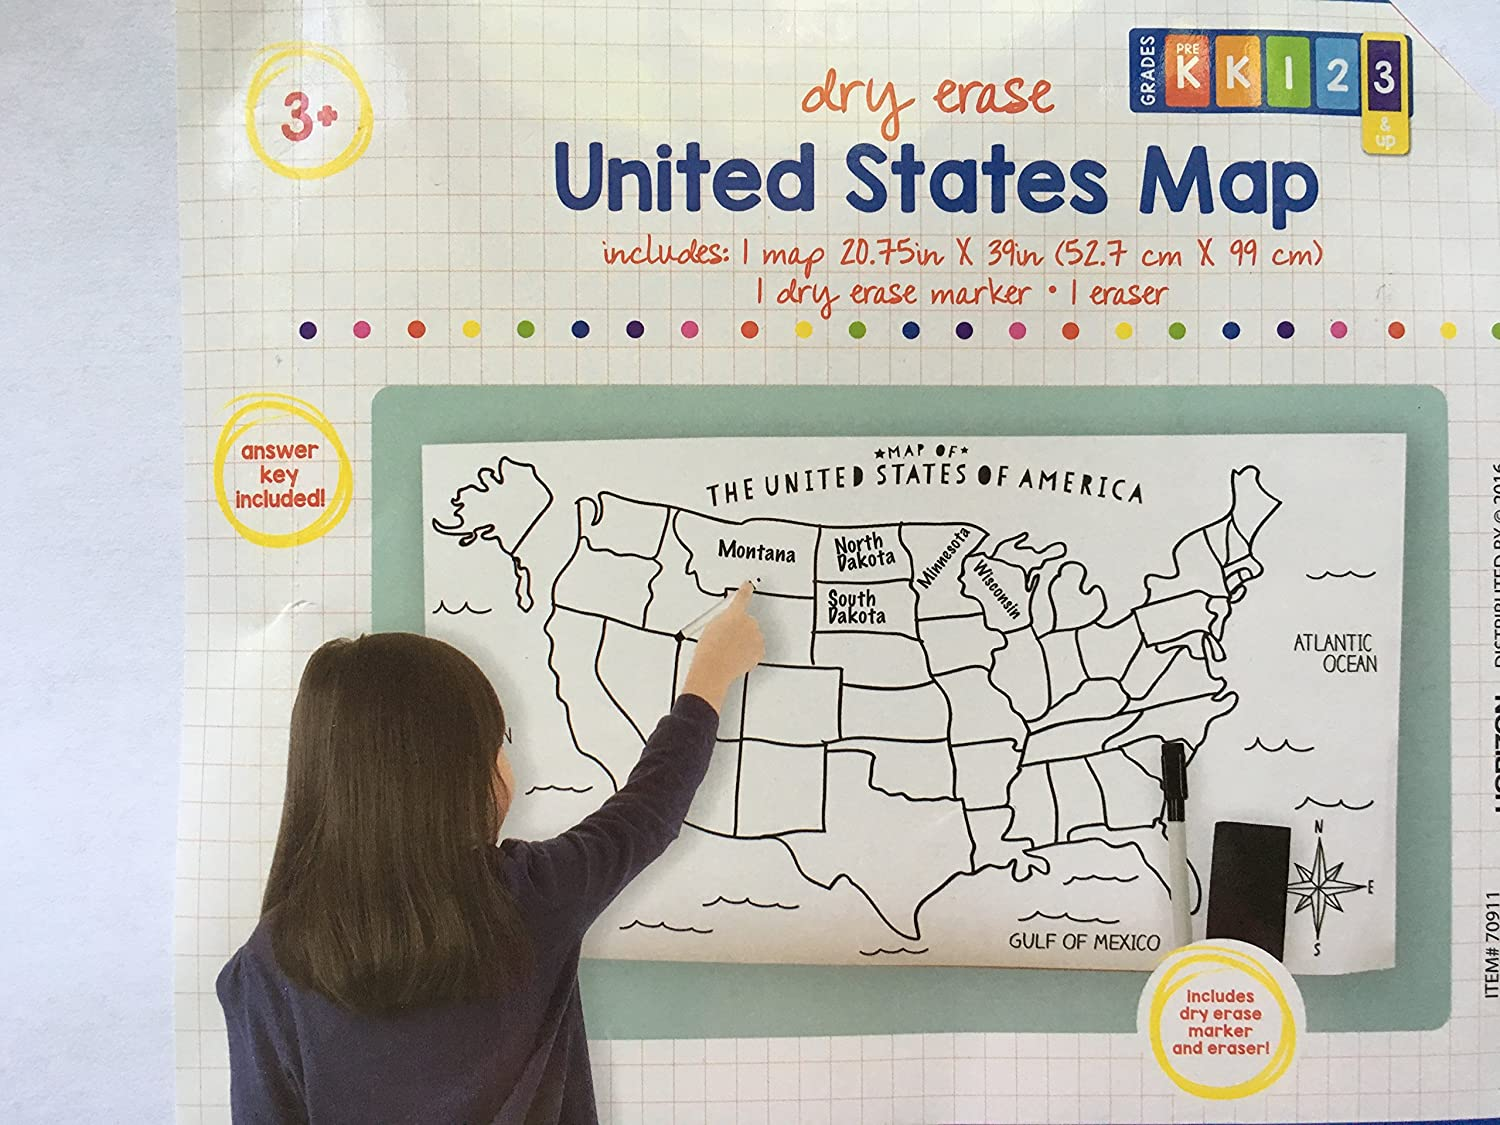 Amazoncom USA Map Large Blank DryErase Poster With Marker - Us map dry erase